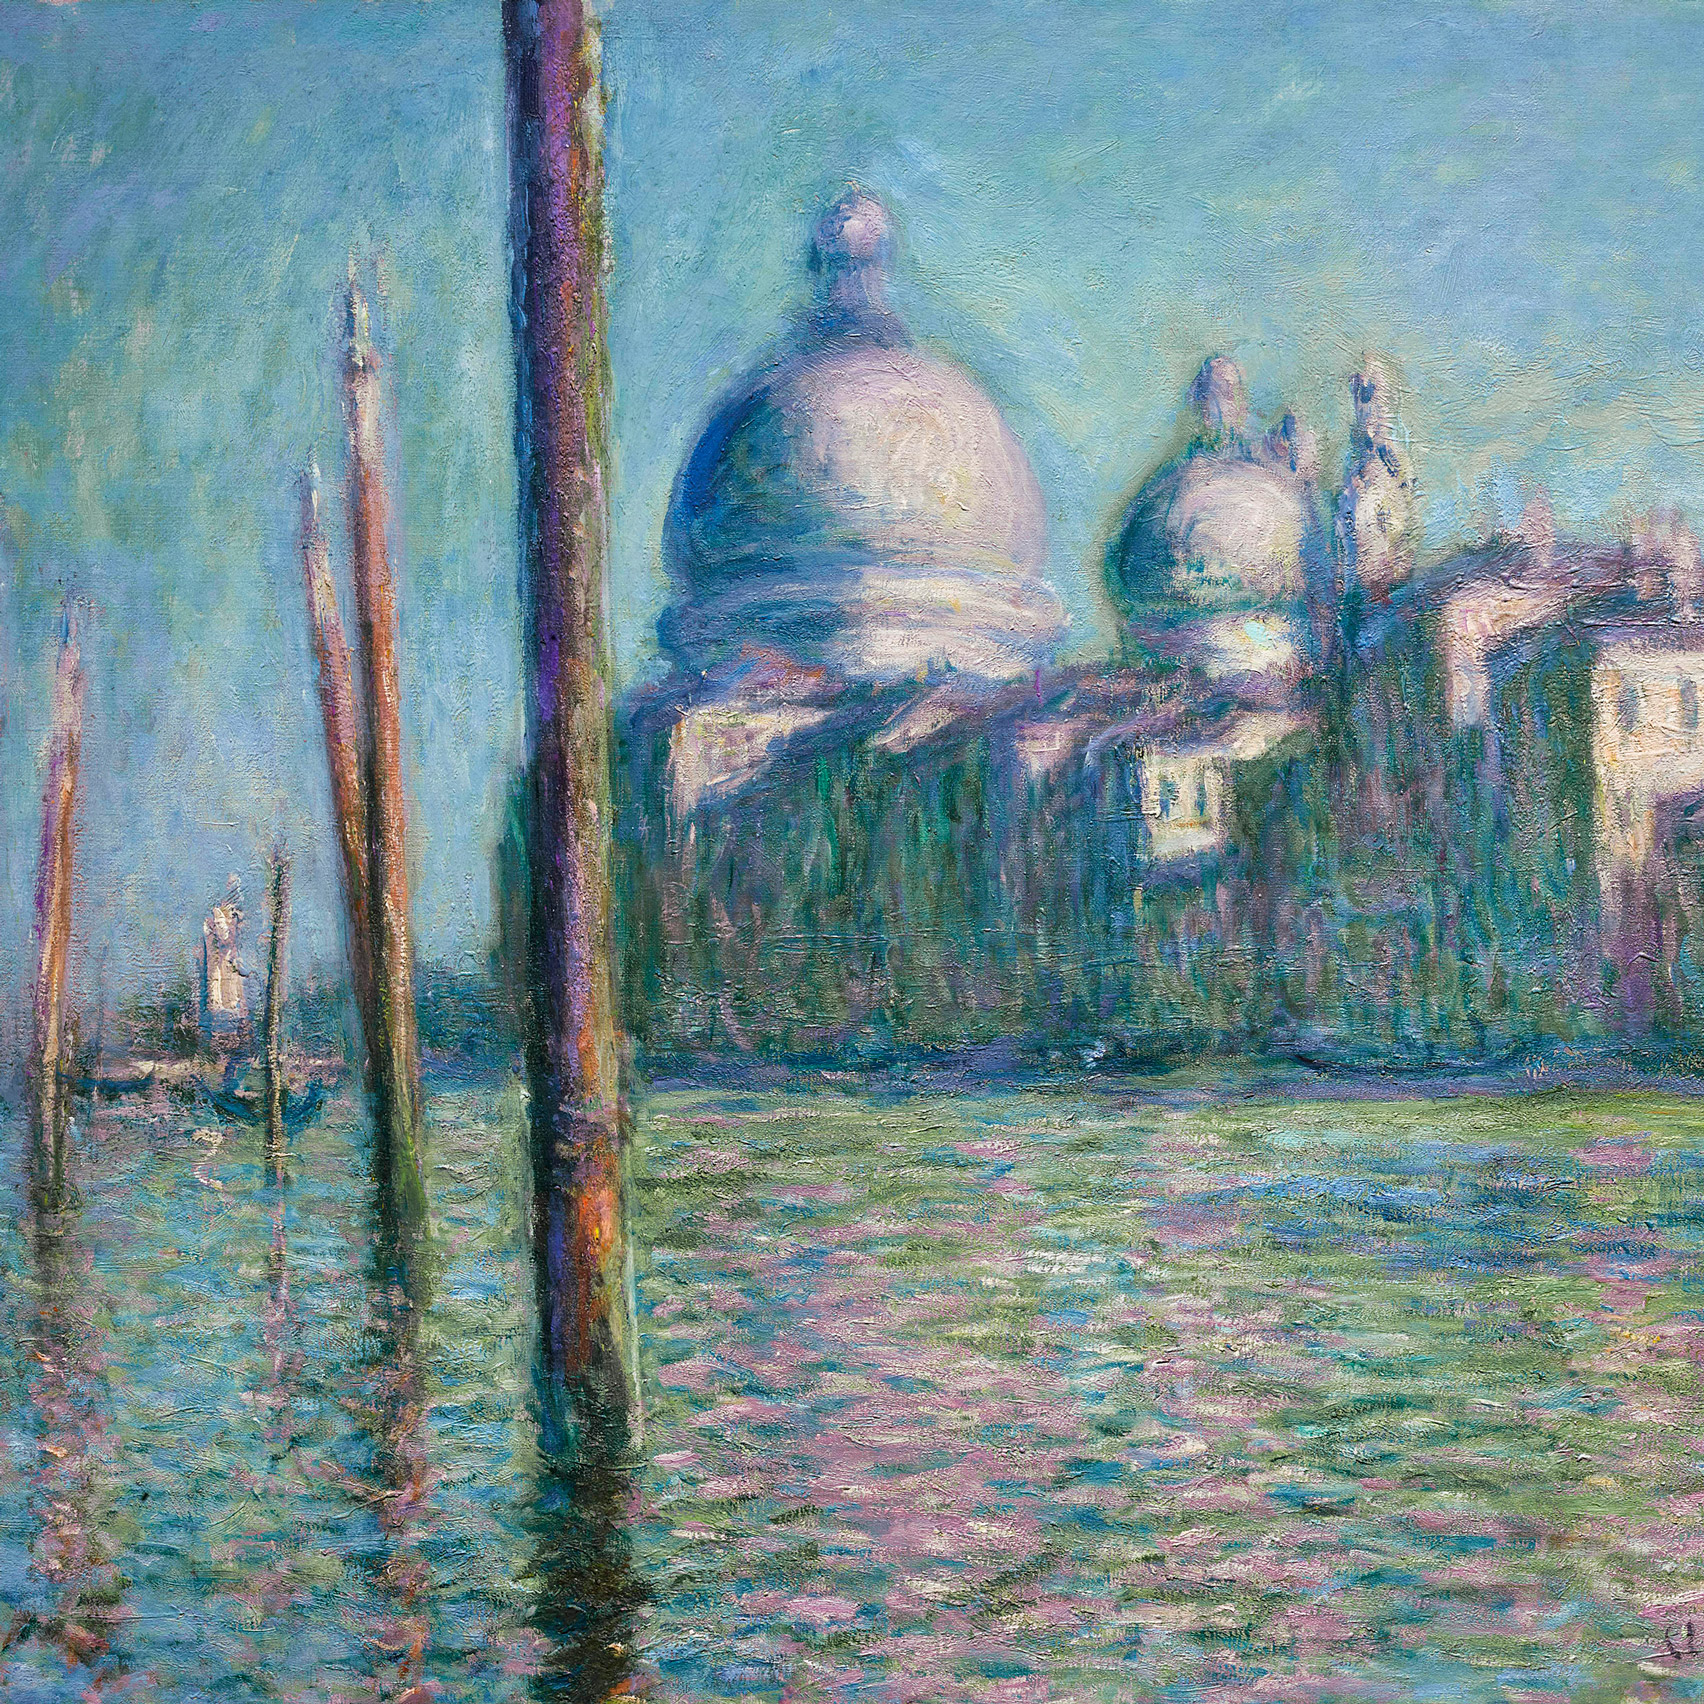 Monet and Architecture exhibition curator picks her five must-see paintings